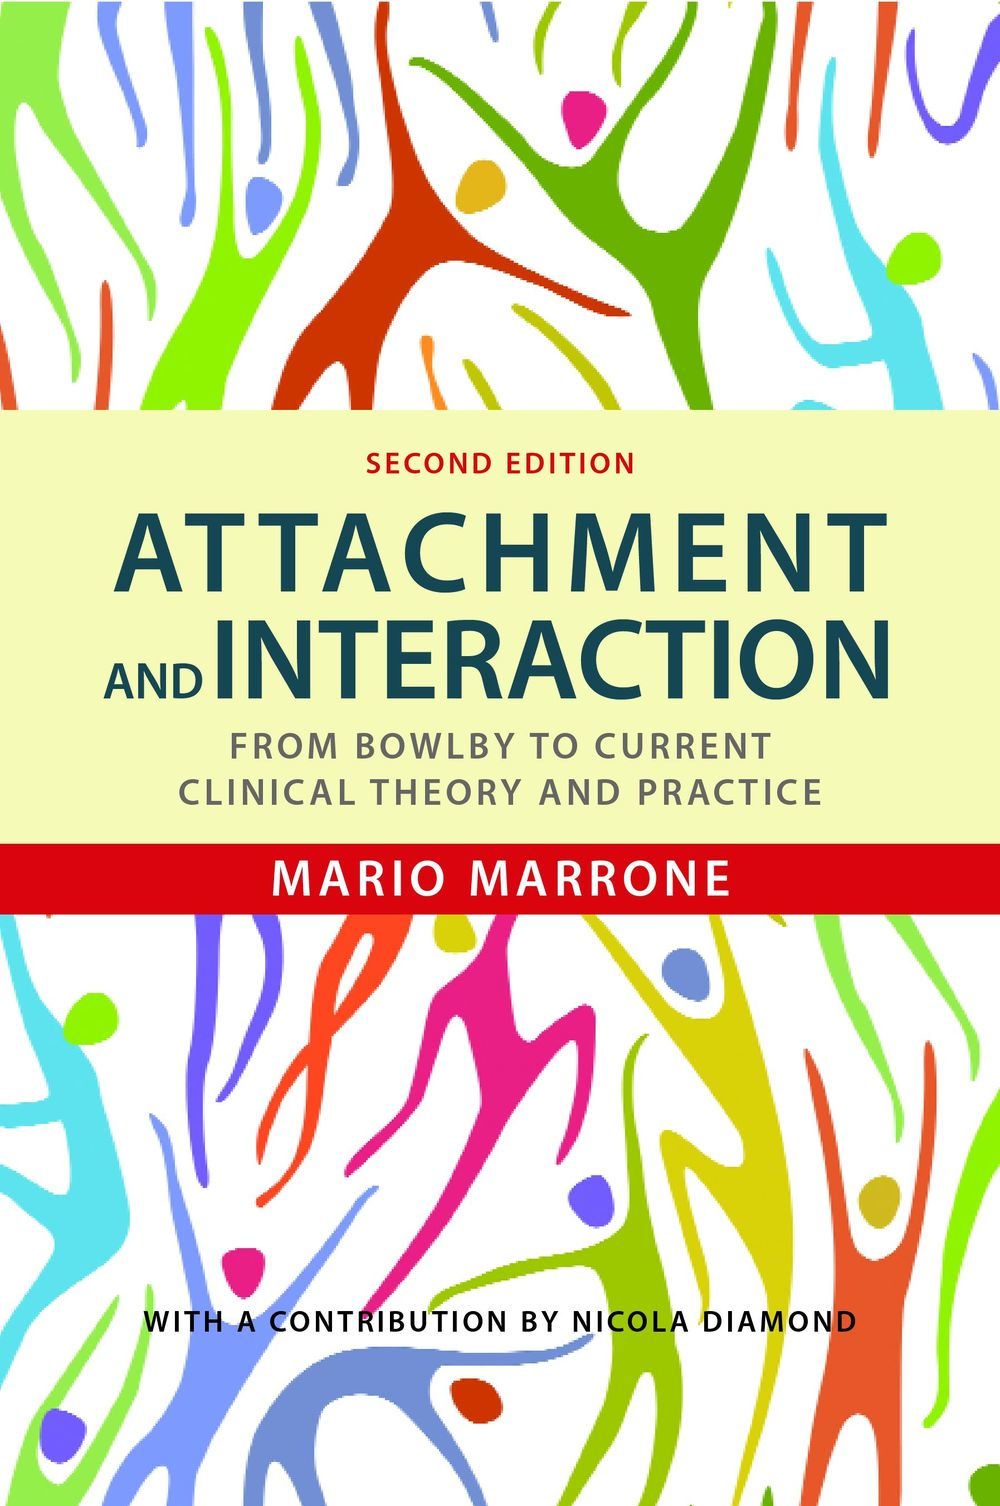 Attachment and Interaction From Bowlby to Current Clinical Theory and Practice Second Edition